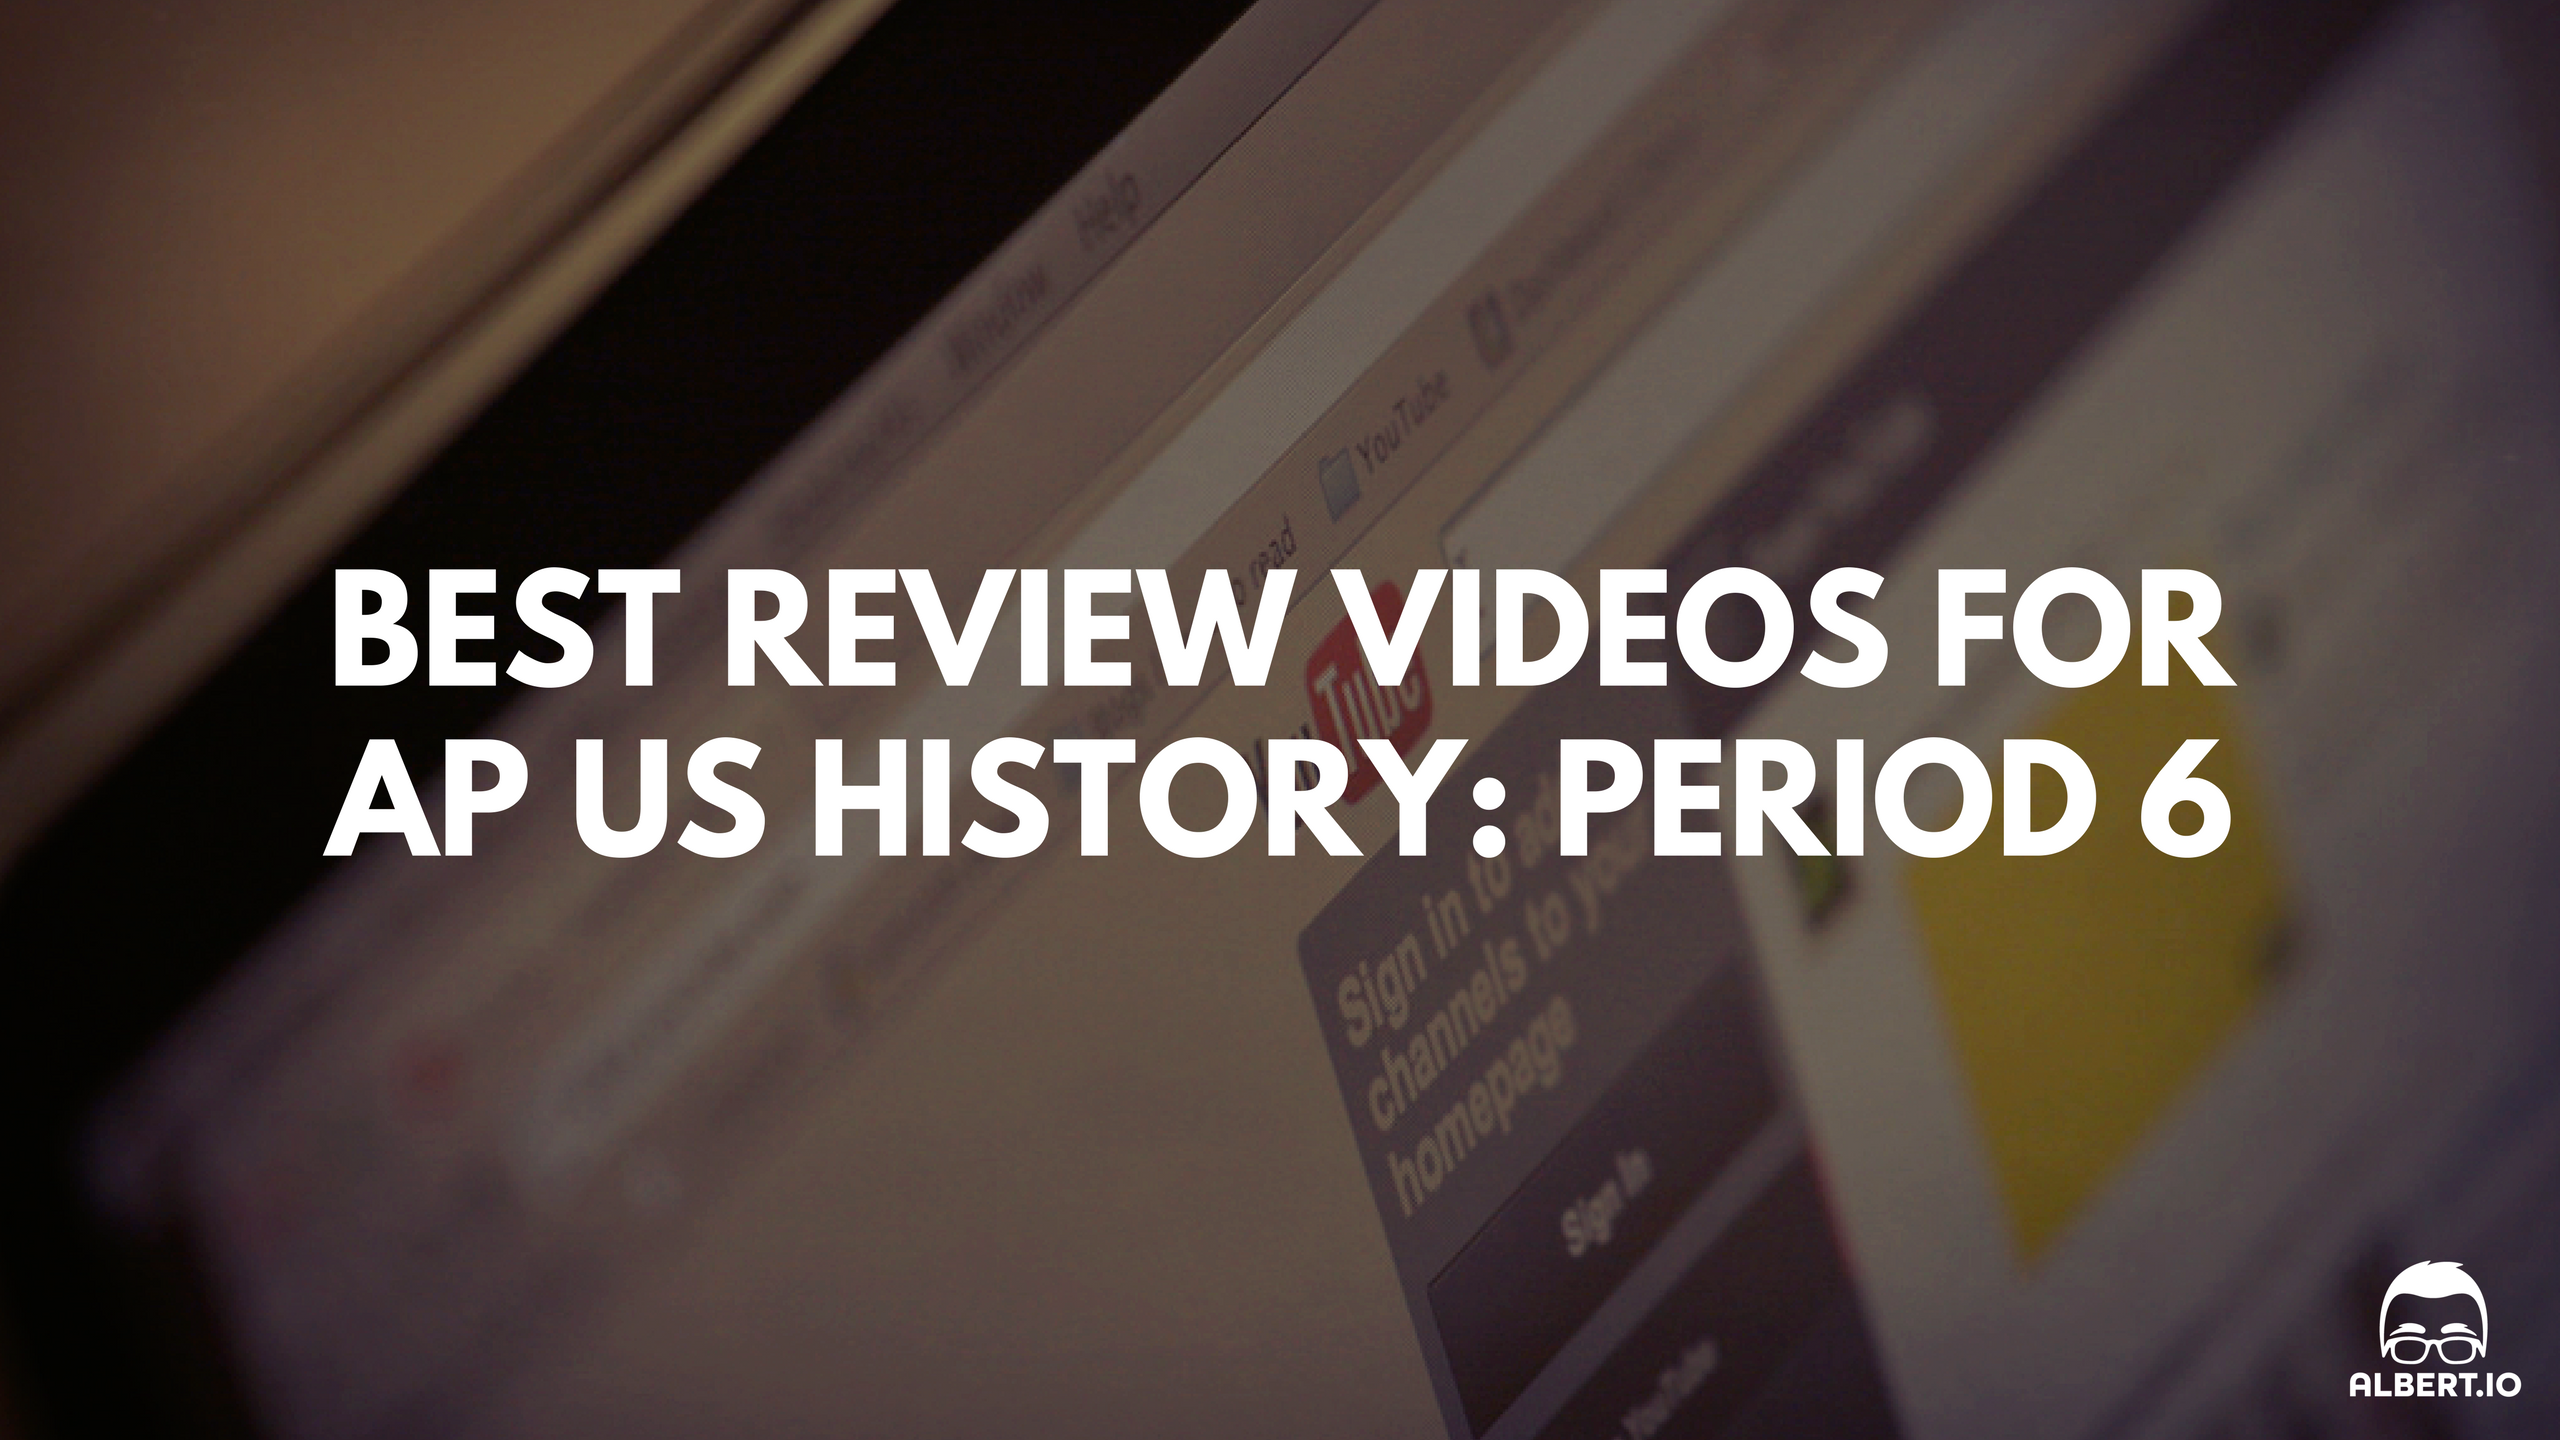 Best Review Videos for AP US History: Adam Norris APUSH